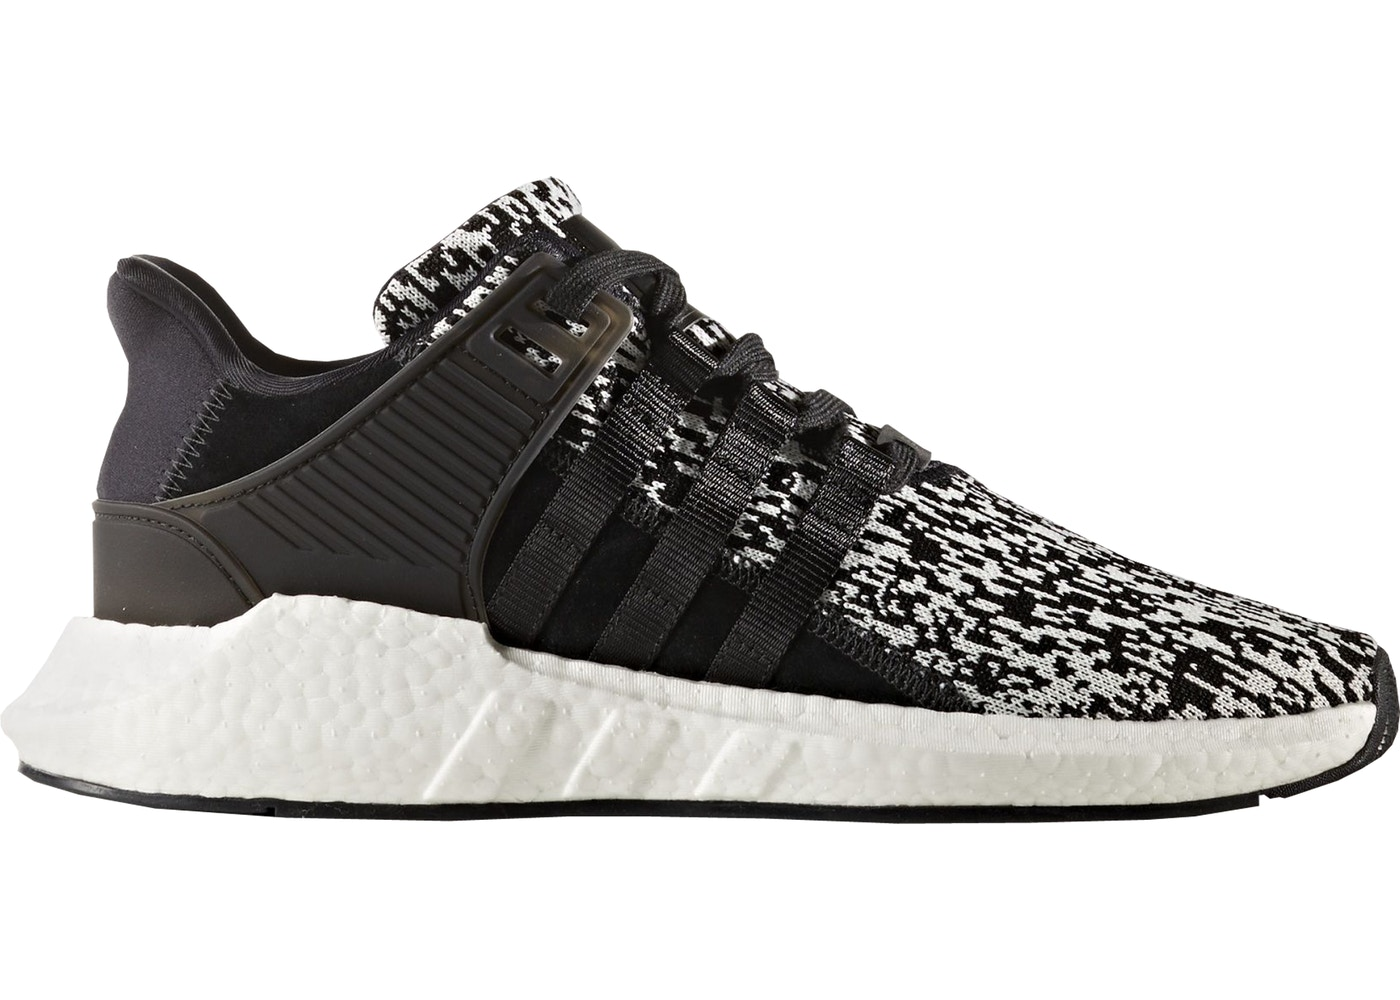 detailed look 57d49 a060a adidas EQT Support 9317 Glitch Black White - BZ0584